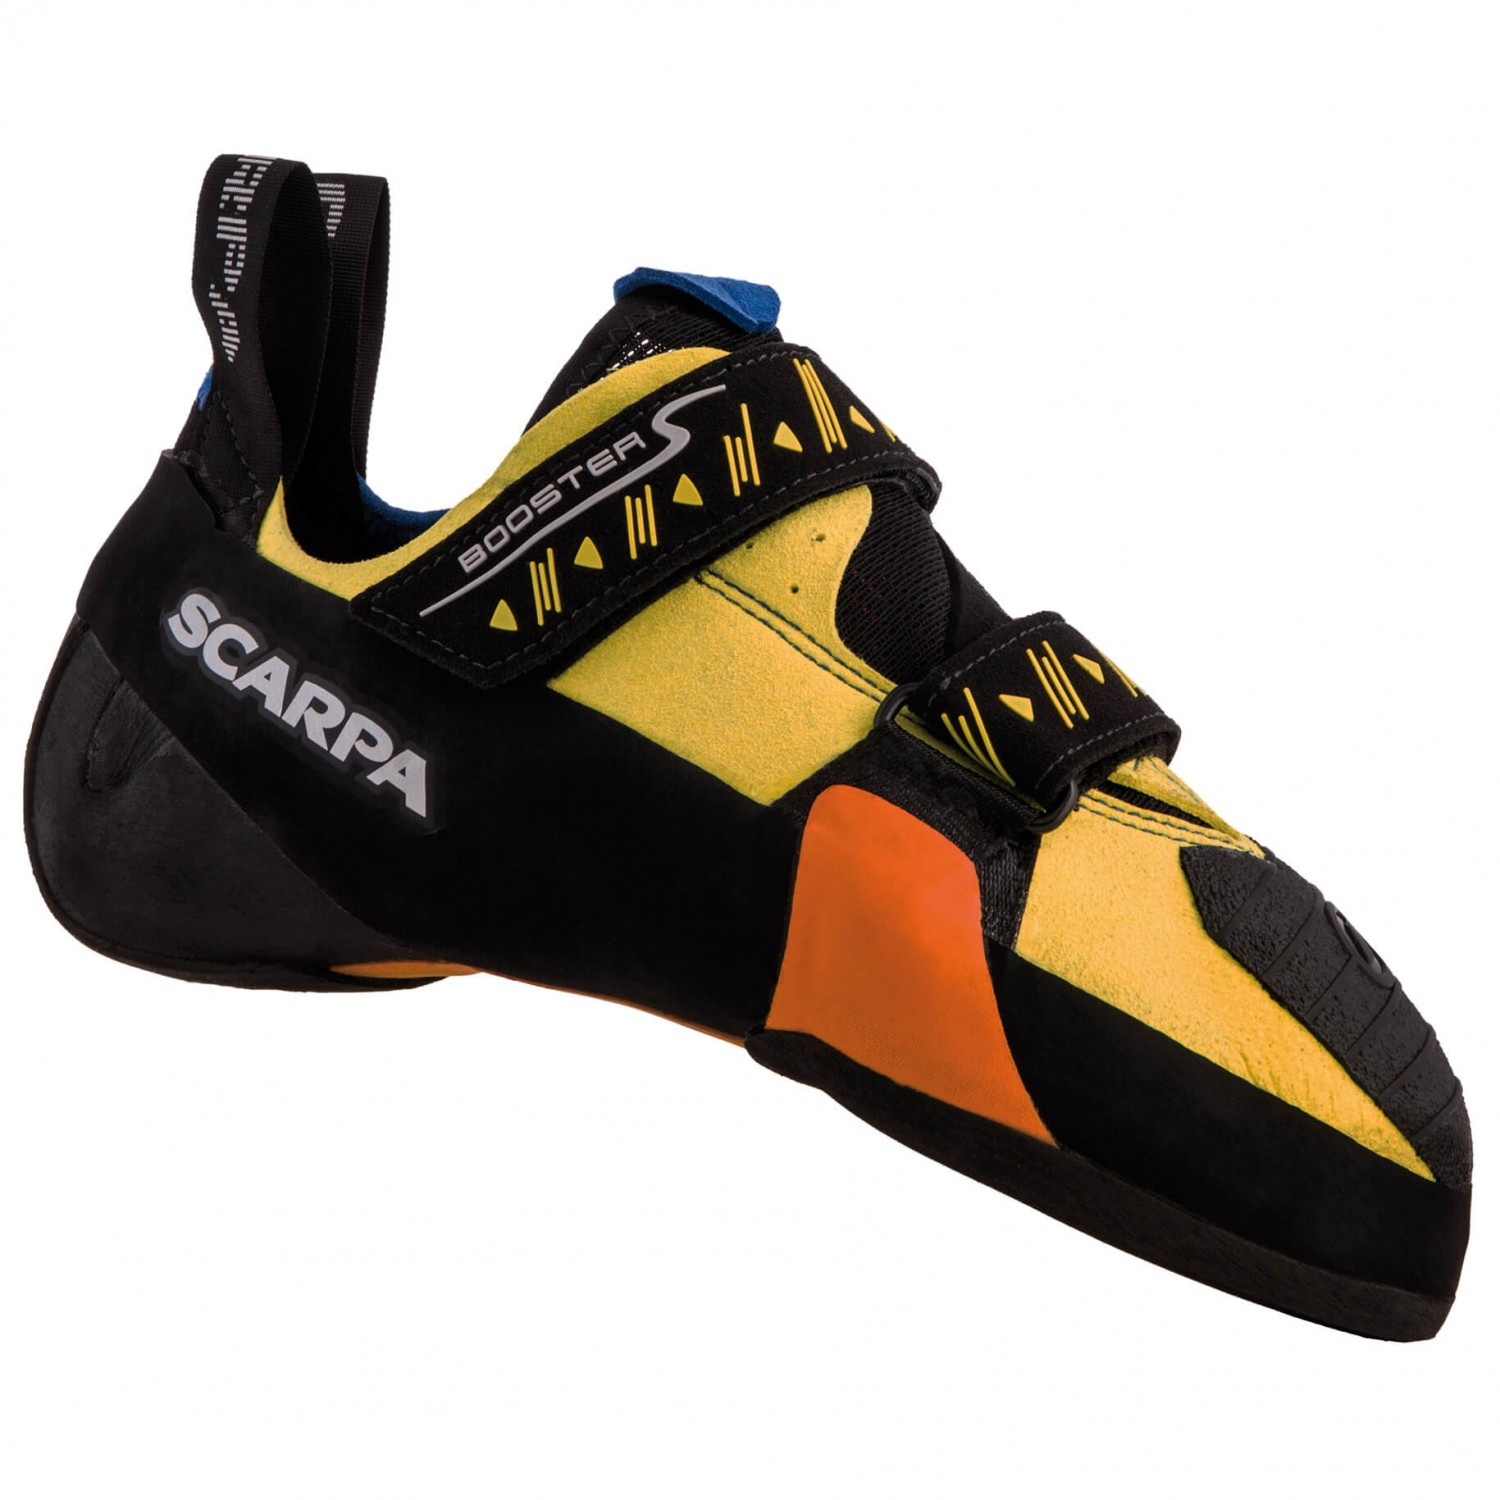 Scarpa | Booster S